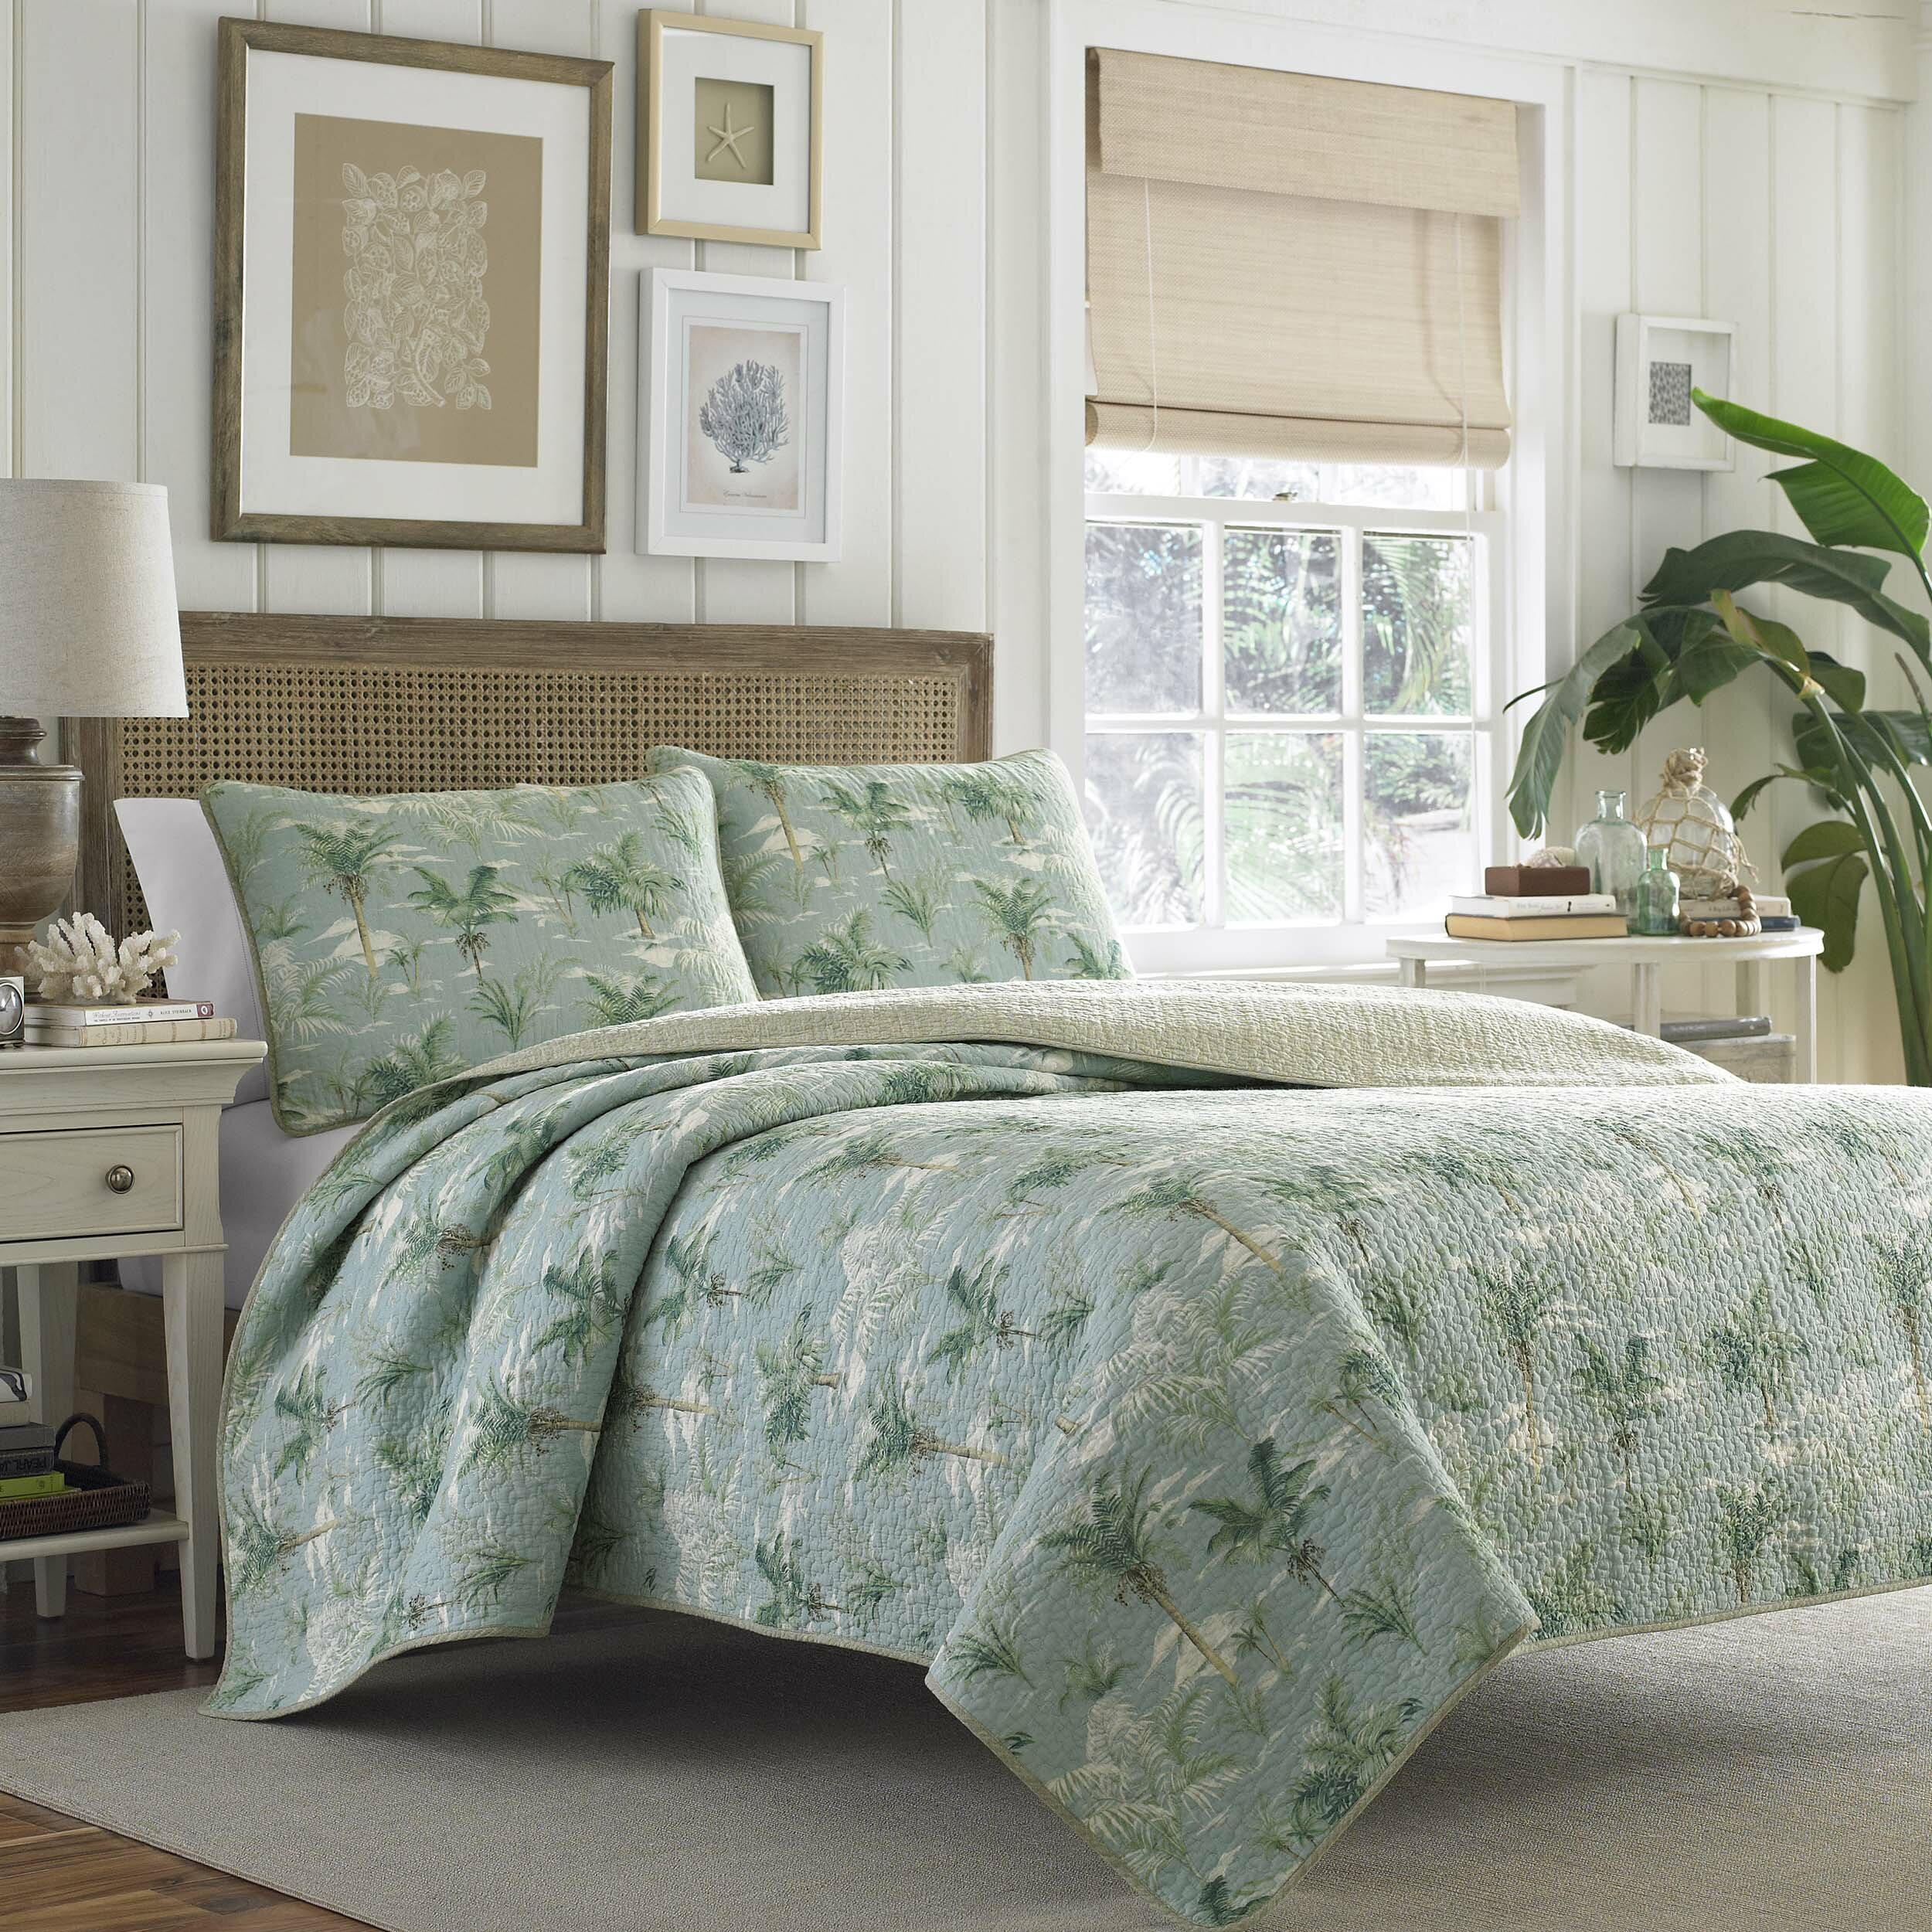 Tommy Bahama Bedding Anglers Isle Reversible Quilt Set